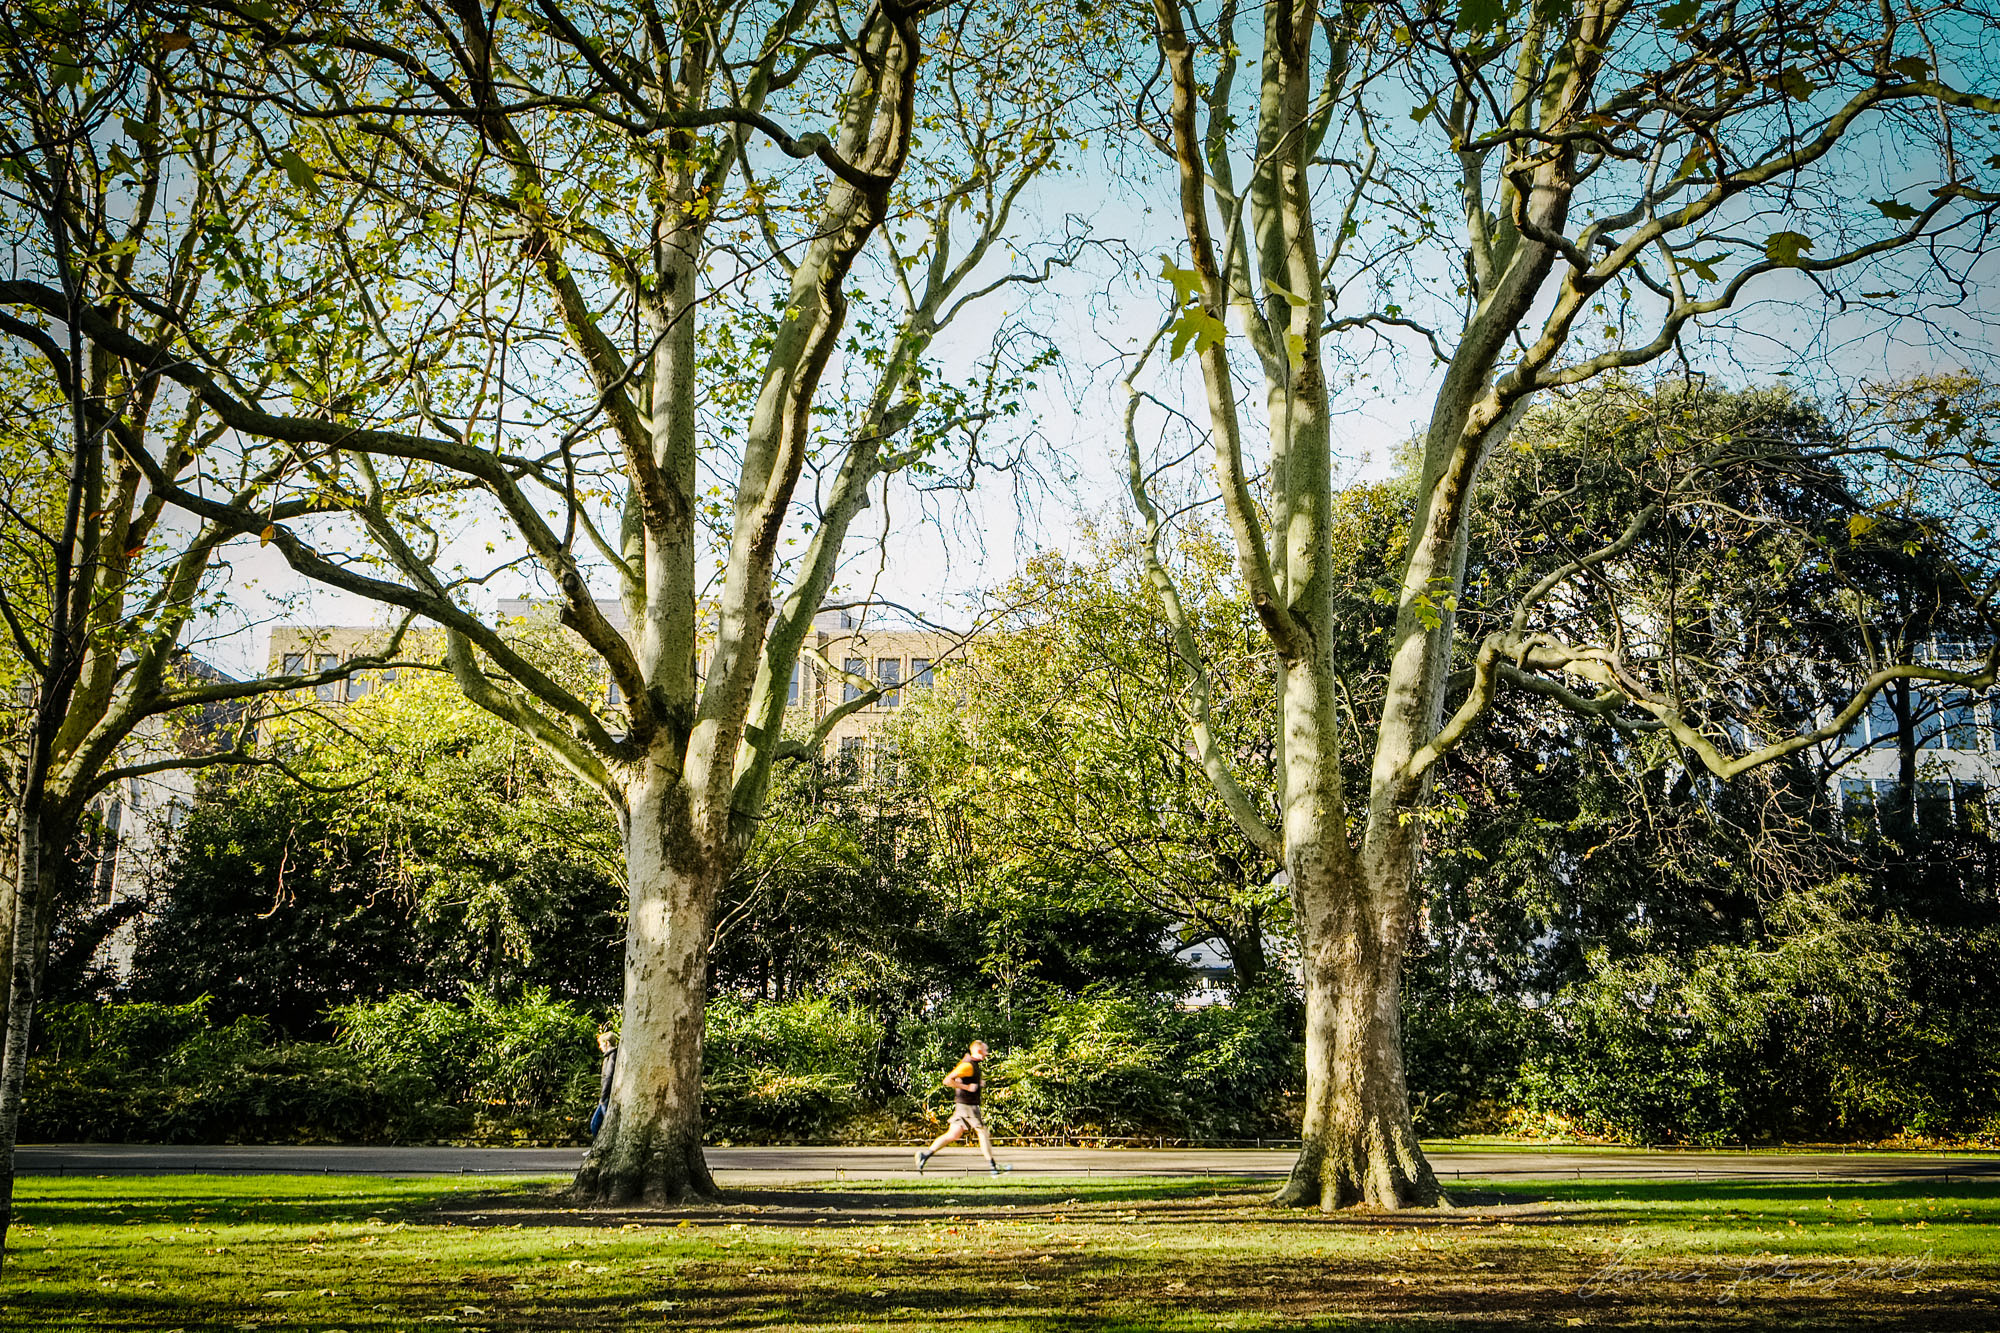 Running through the Trees - Taken with a Fuji XE1